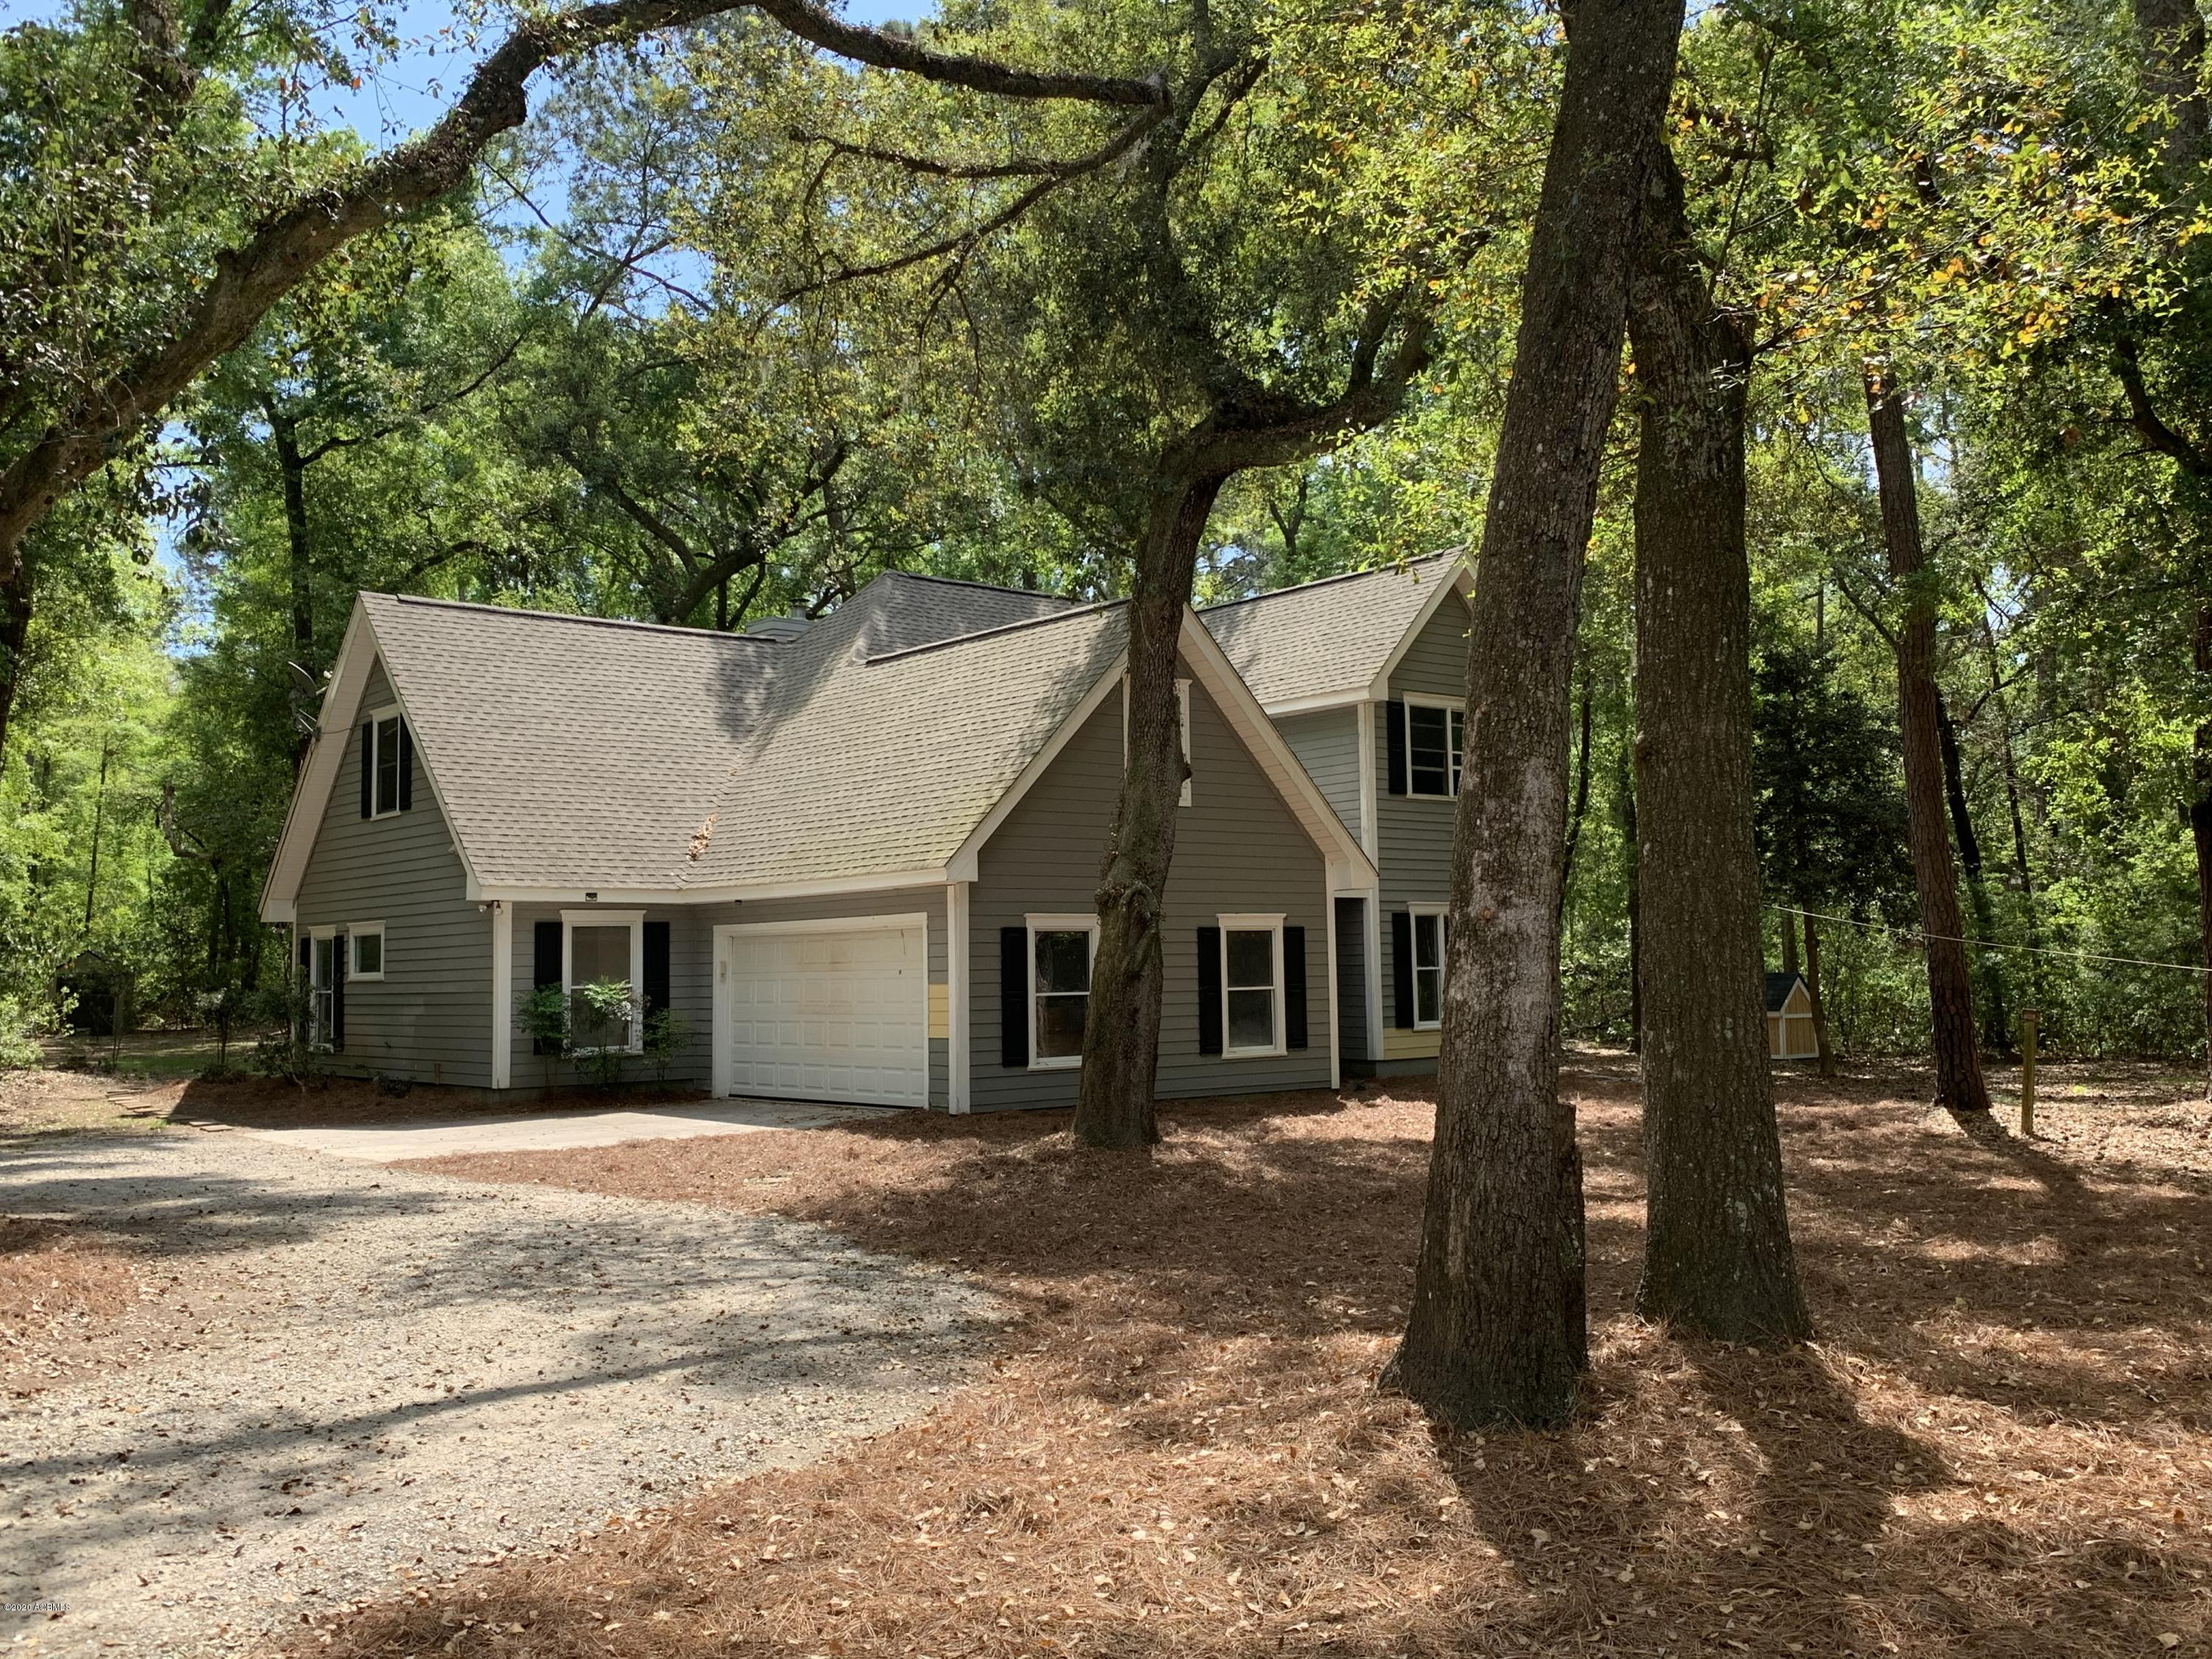 Photo of 2 Oxeye Lane, Beaufort, SC 29907